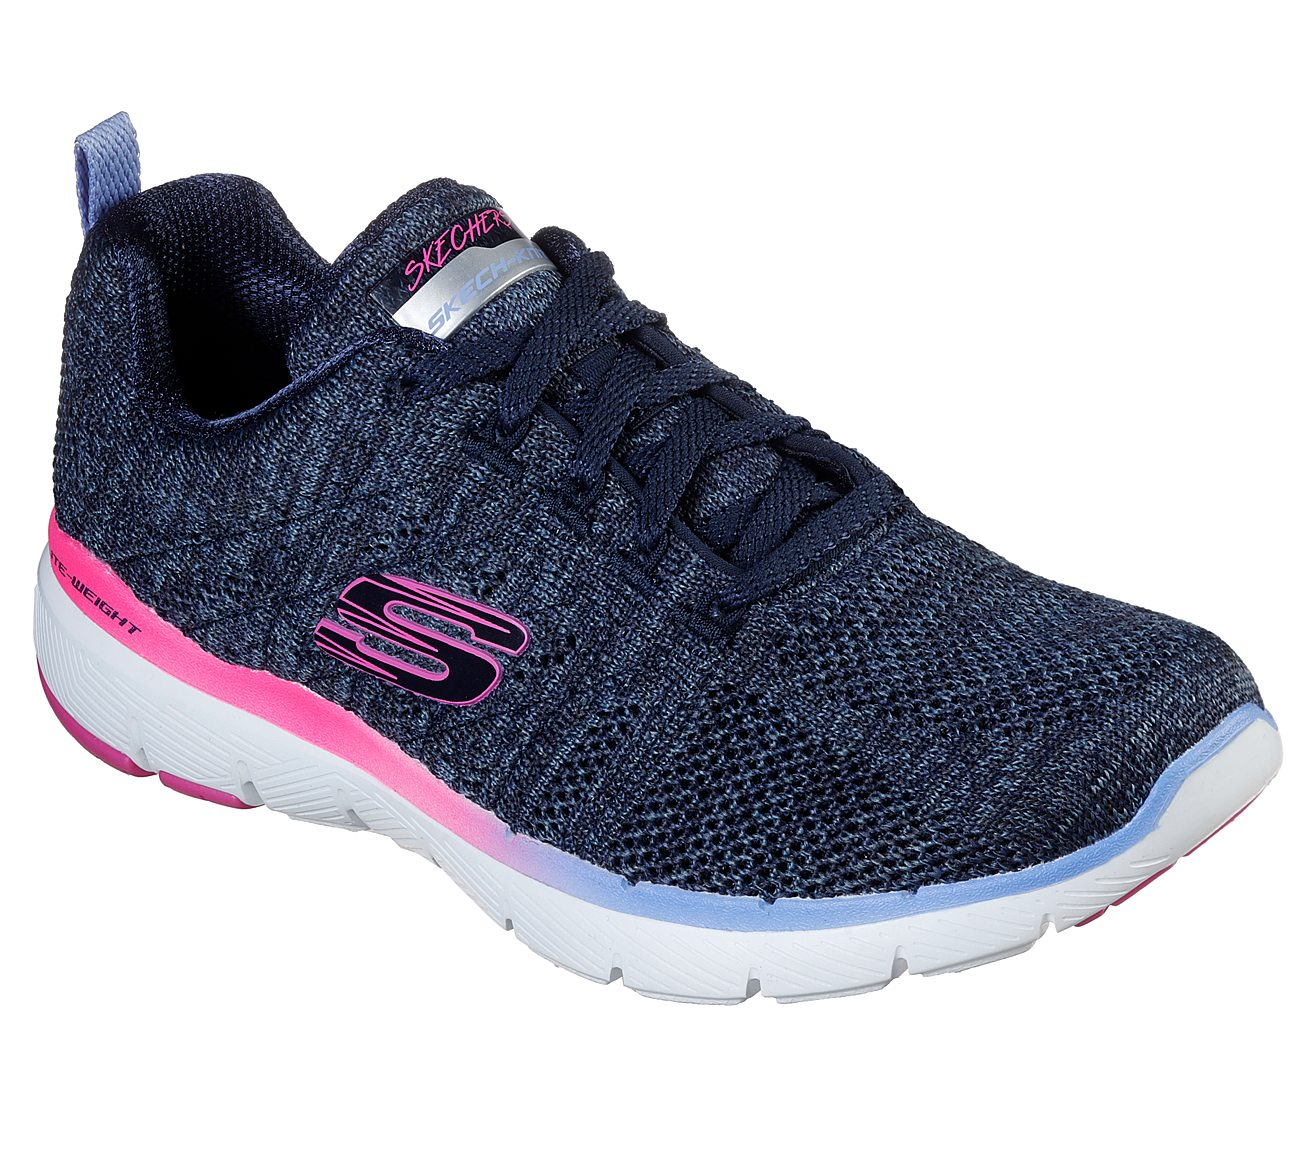 c7b17aa12da Buy SKECHERS Flex Appeal 3.0 - Reinfall Flex Appeal Shoes only $70.00